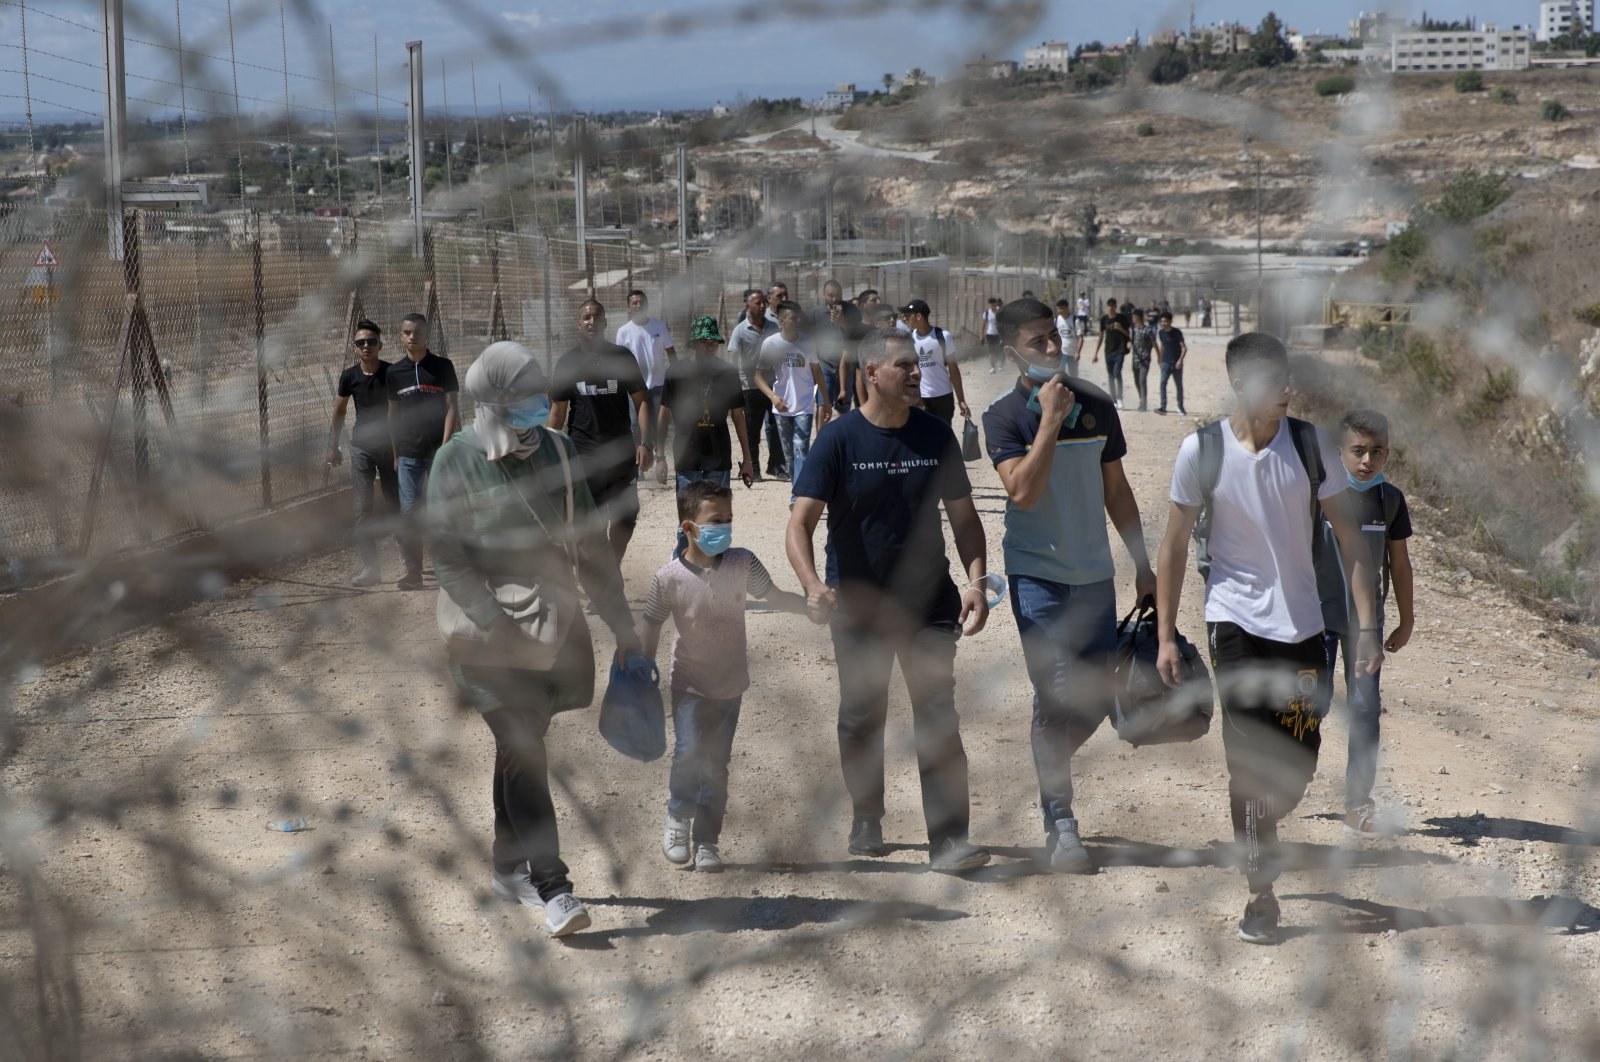 Palestinians cross into Israel through a damaged section in the Israeli separation fence, aiming for a day on the beach as they celebrate the second day of Eid al-Adha, in the West Bank village of Faroun, near Tulkarm, Palestine, July 21, 2021. (AP Photo)